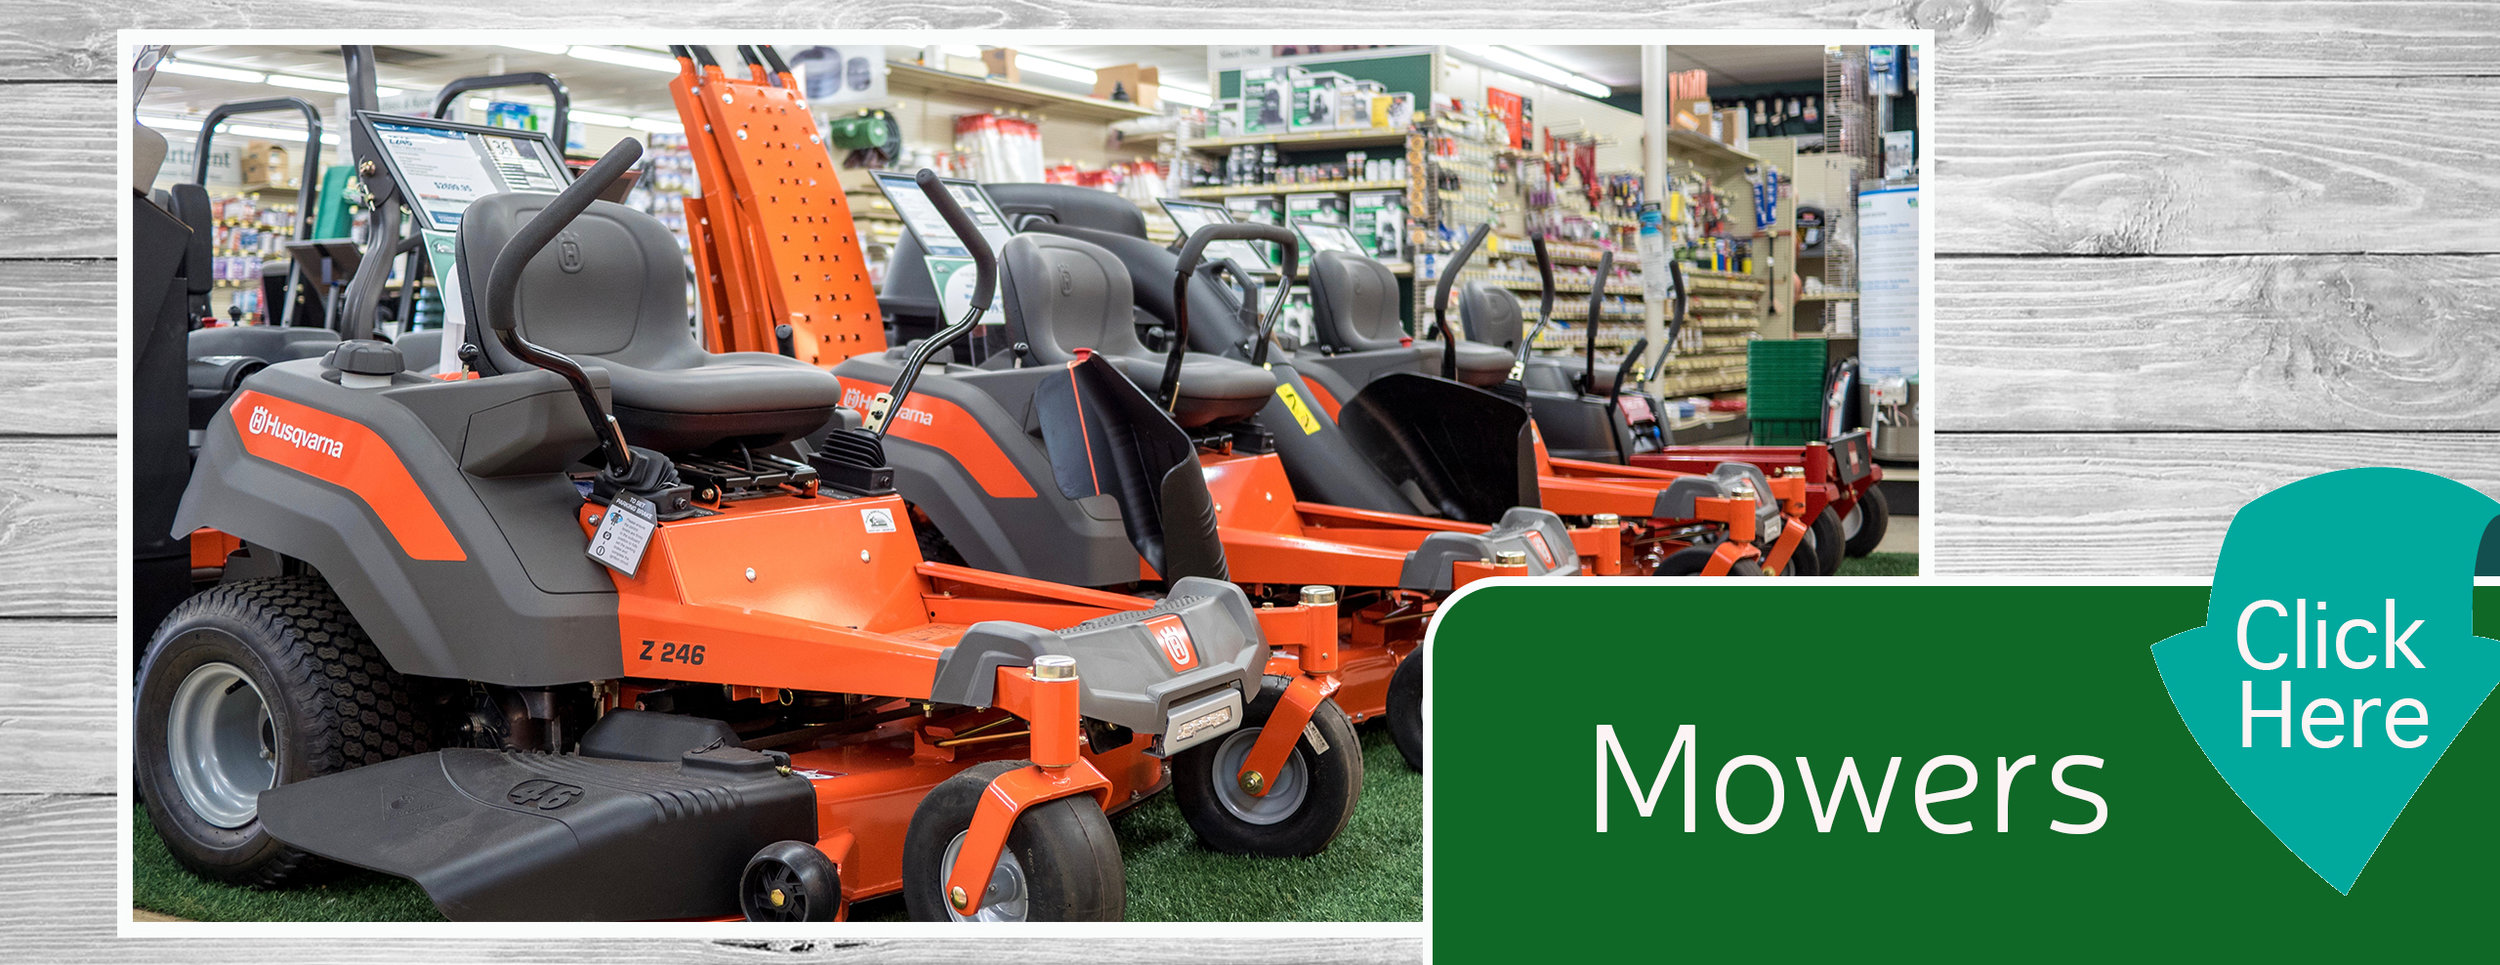 Mowers Home Page Banner